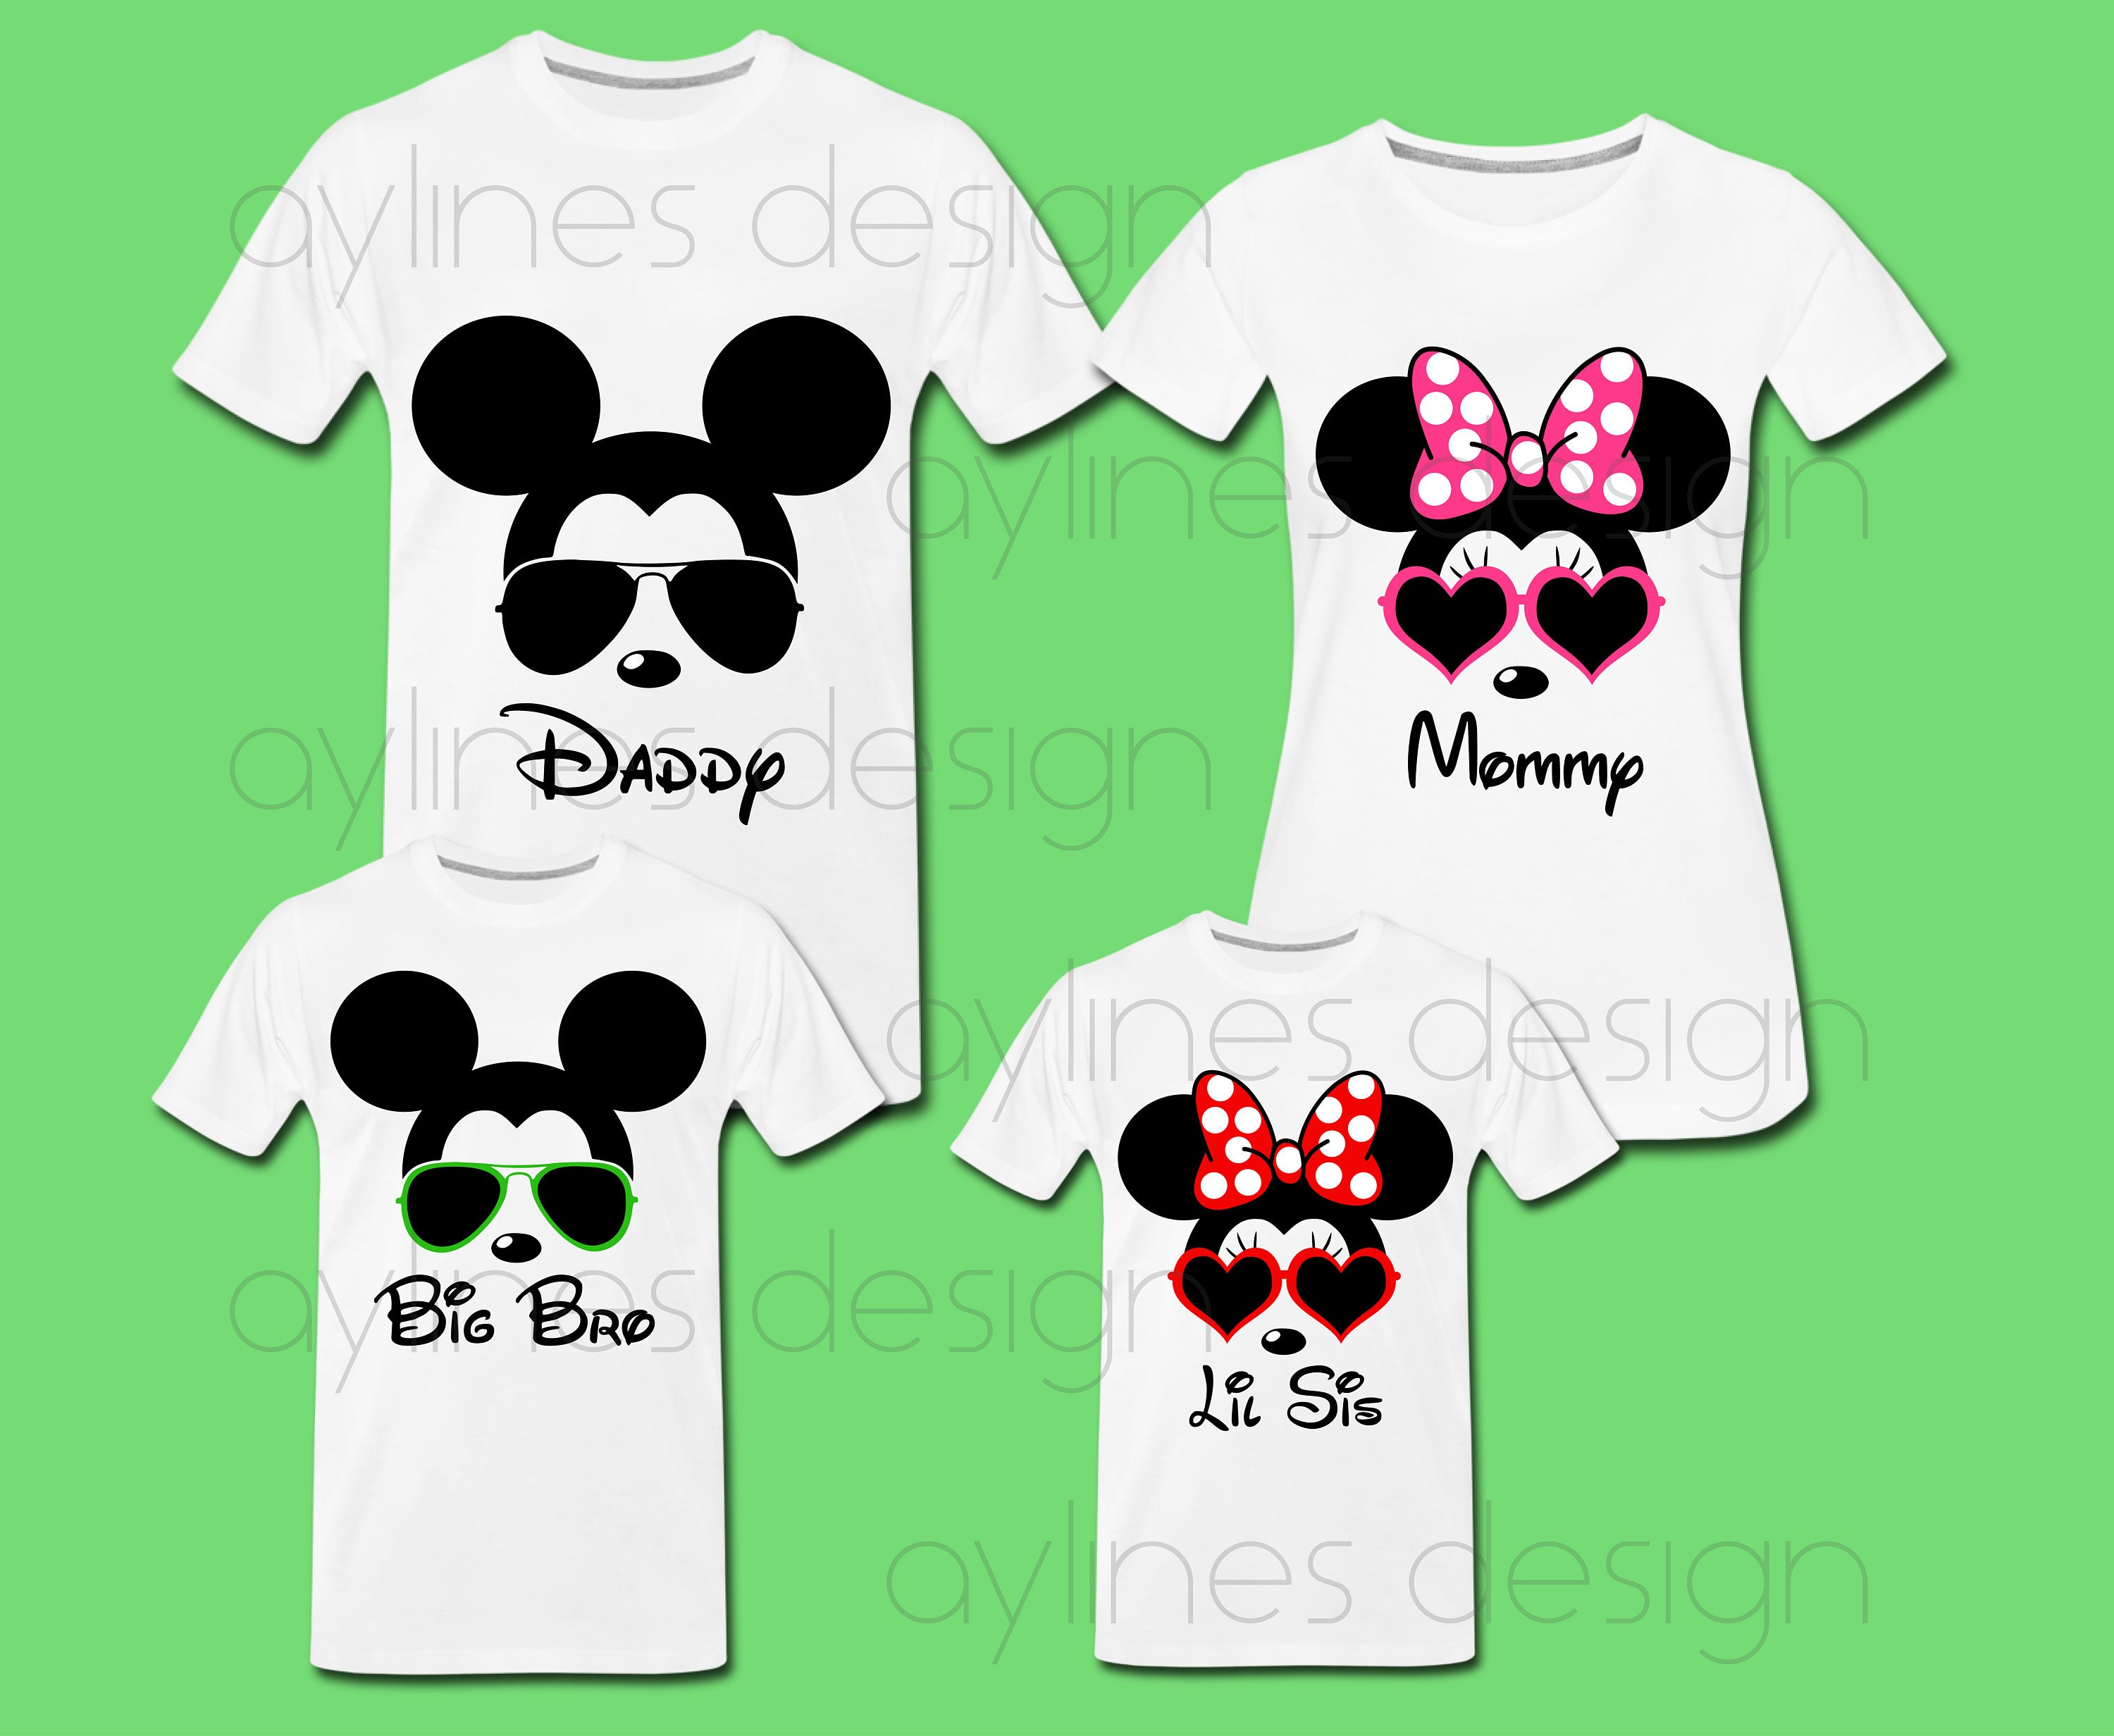 Minnie Mickey Mouse Sunglasses Prints For Disney Family